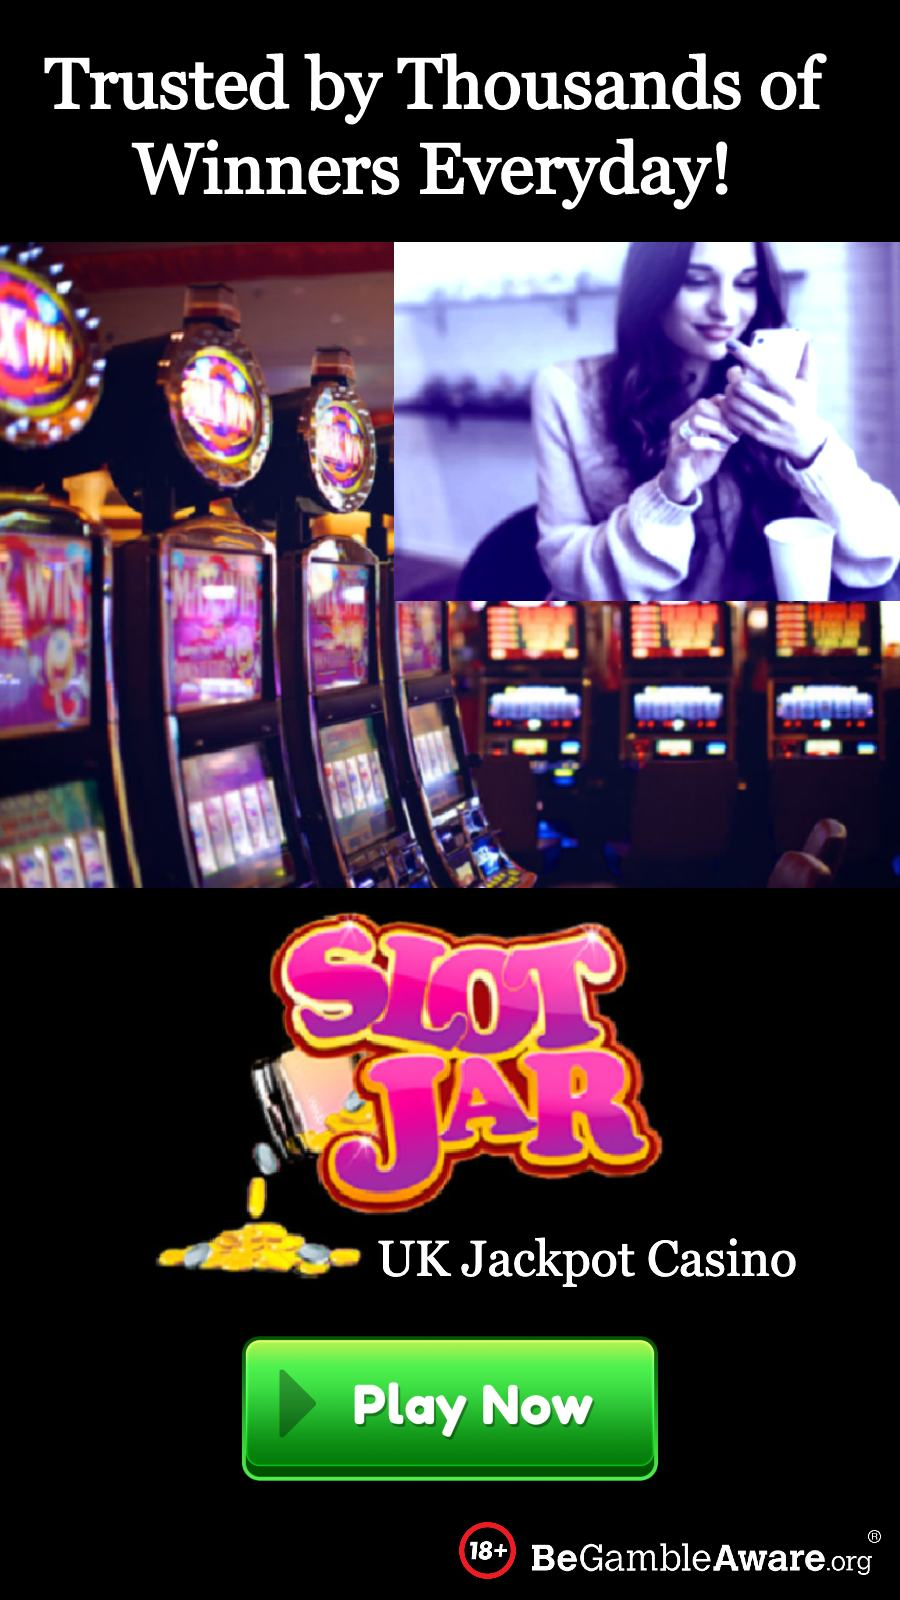 slot jar international slots casino online